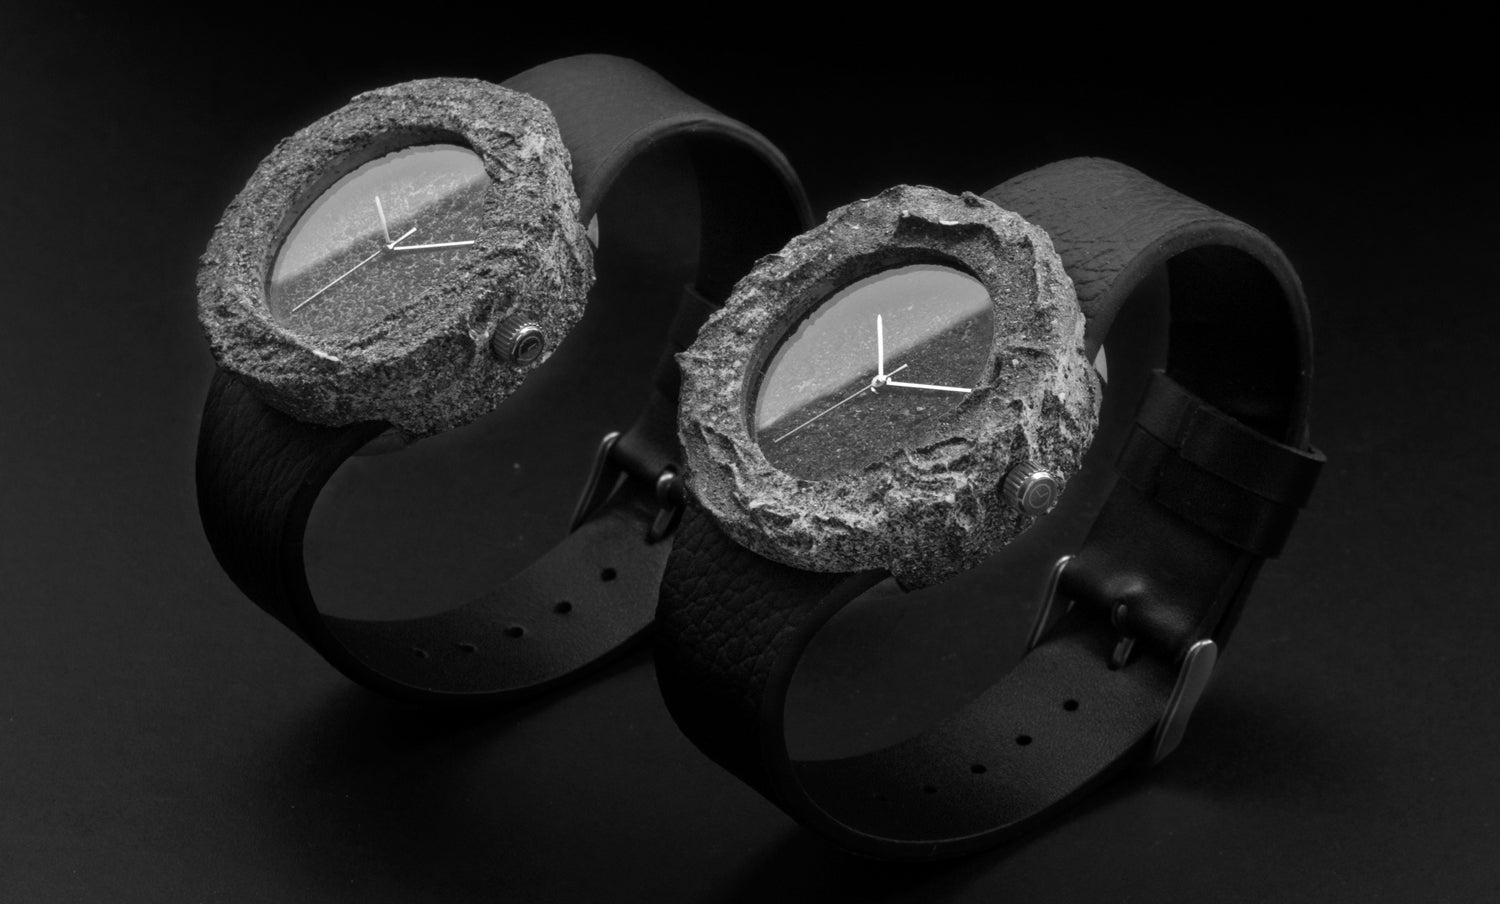 Own a Sizeable Chunk of the Moon With This Lunar Watch